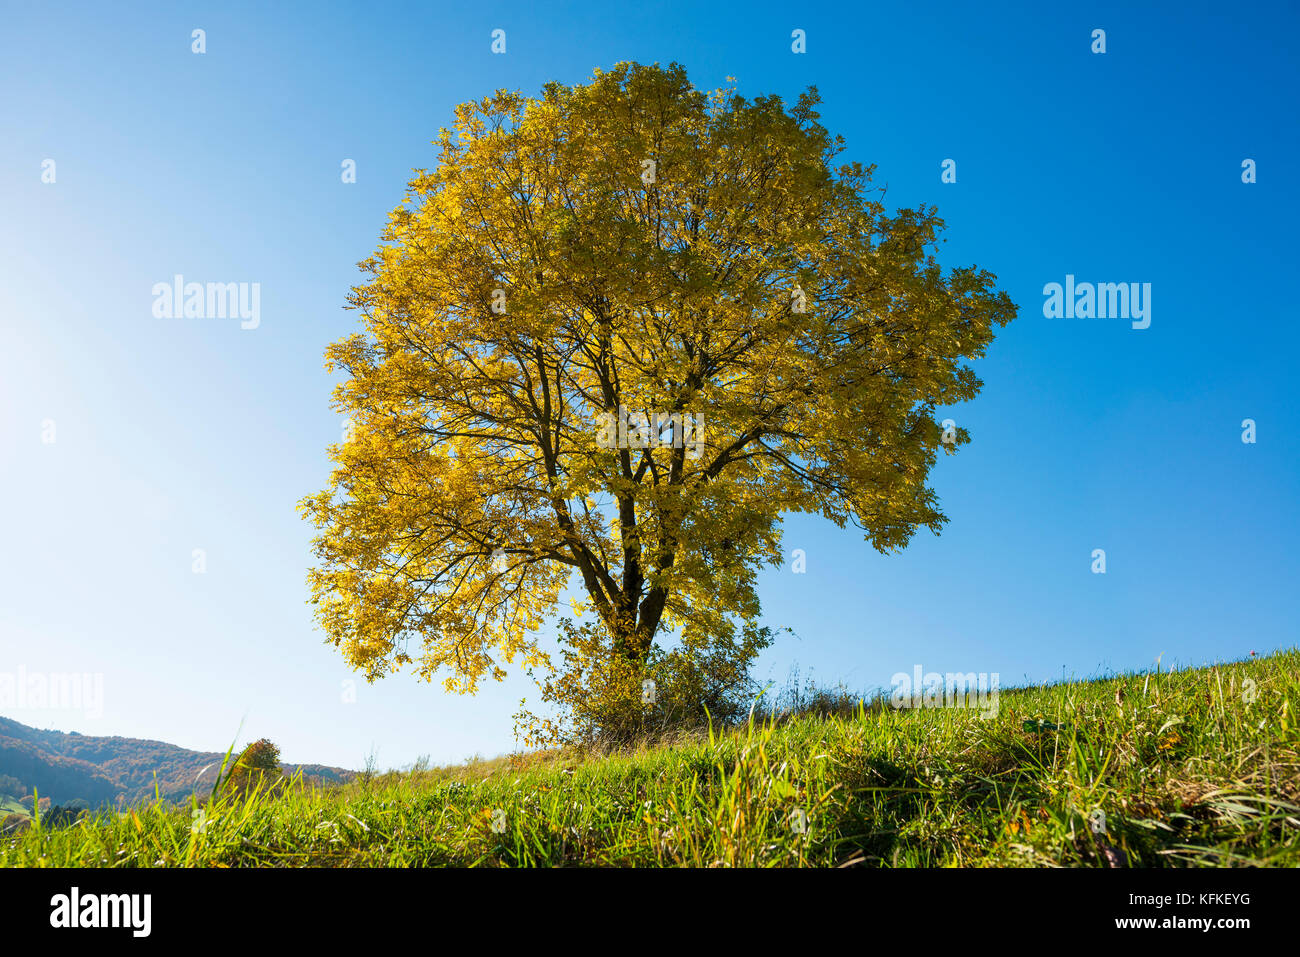 European ash (Fraxinus excelsior), solitary tree in autumn, Rhön Biosphere Reserve, Hesse - Stock Image